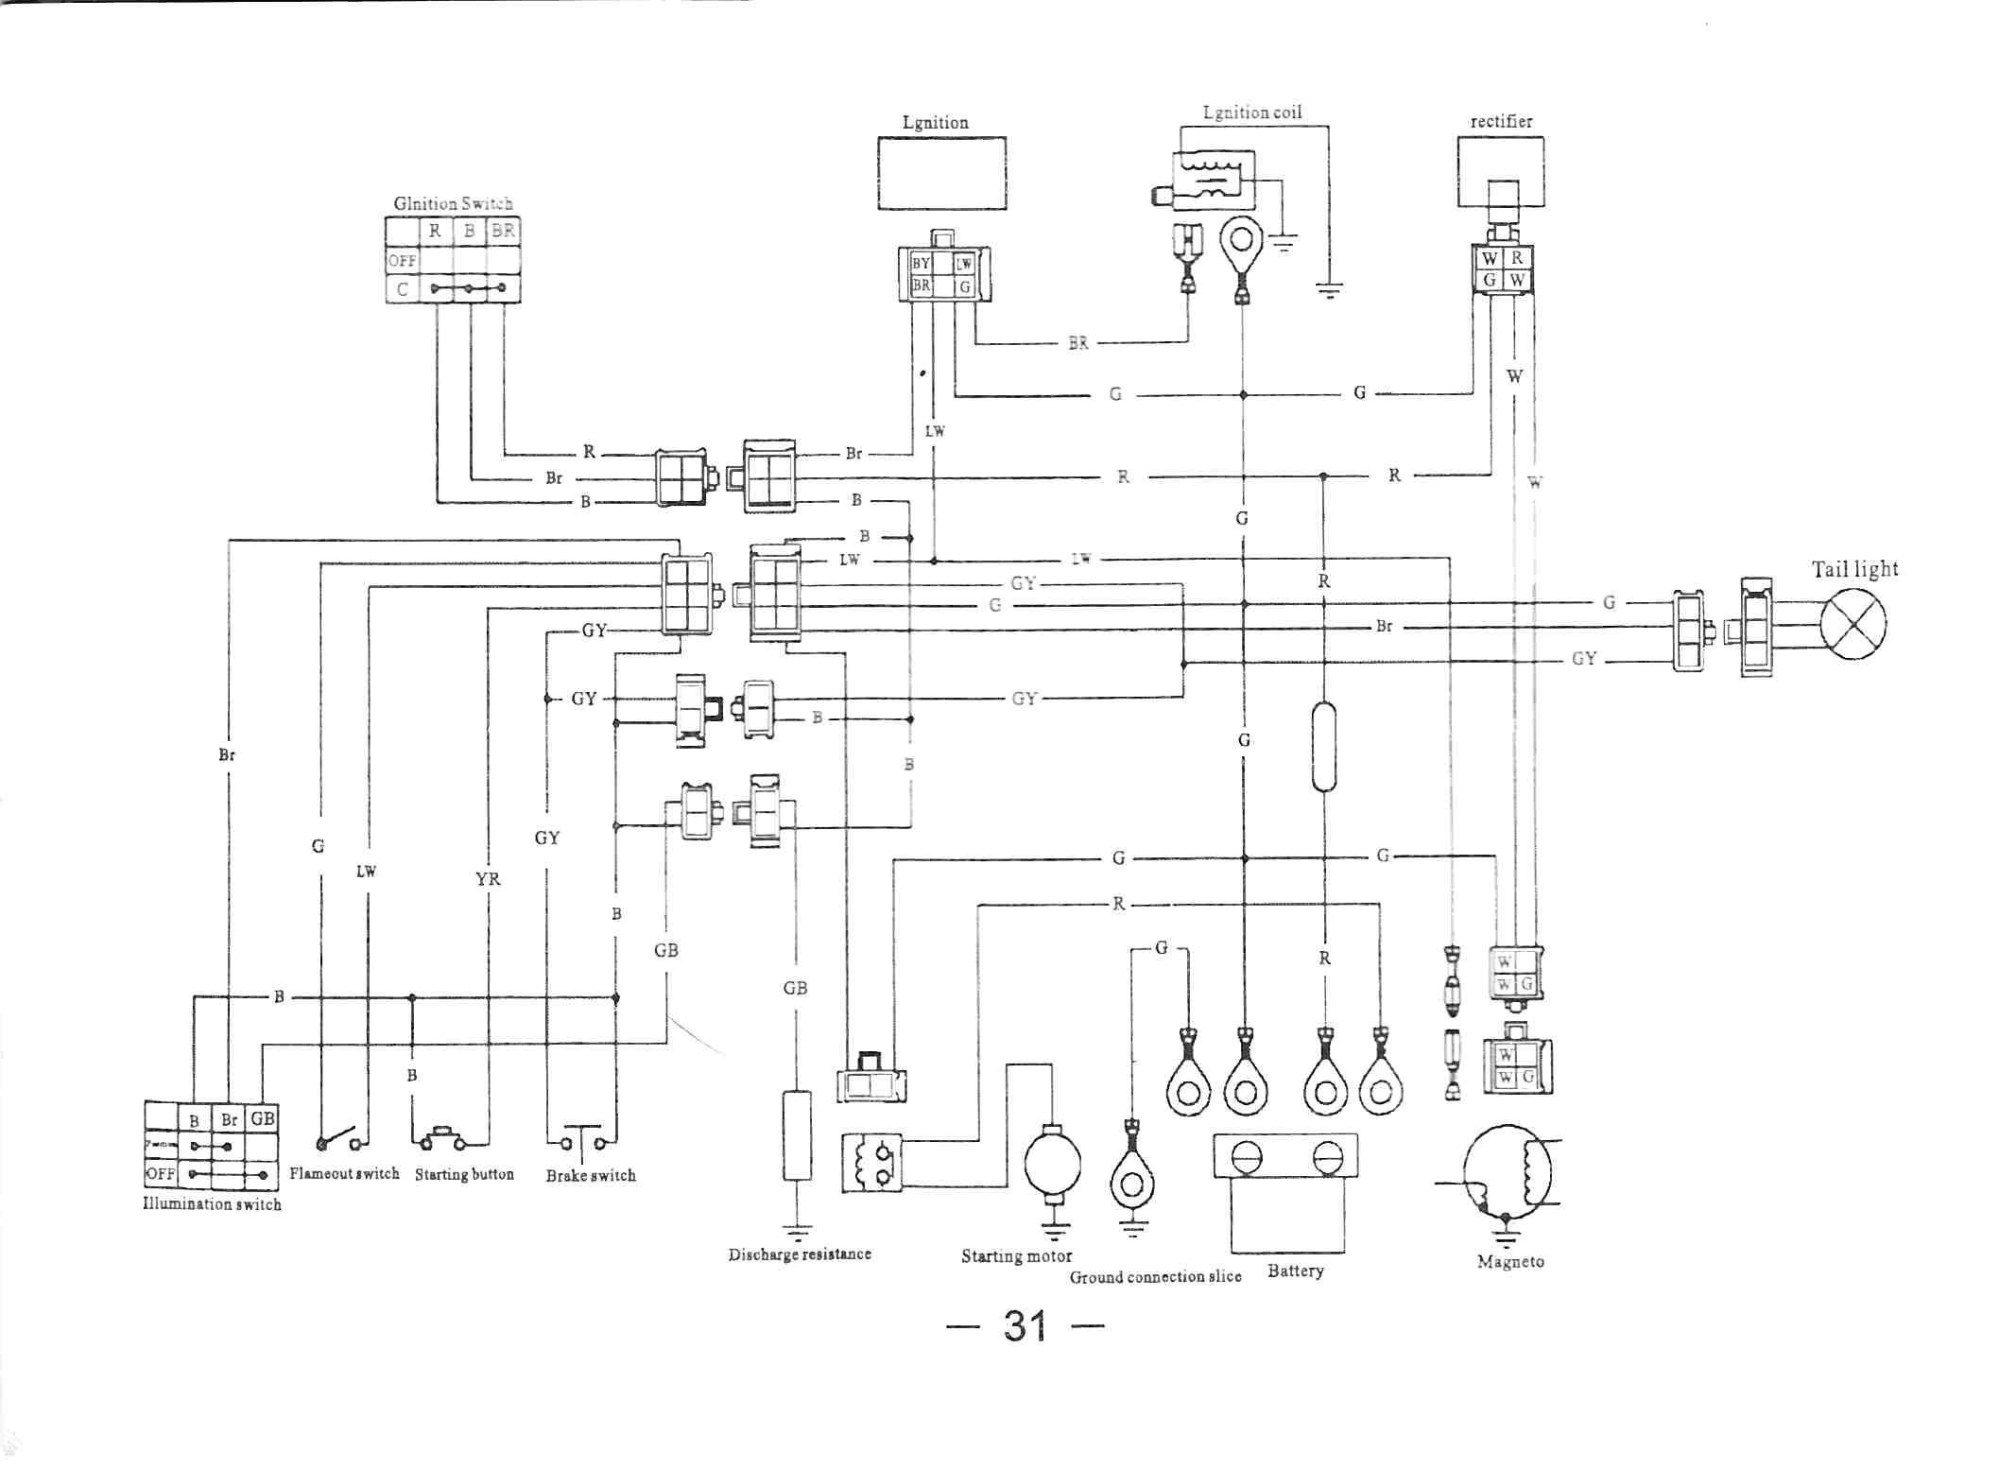 hight resolution of 86 lt250r wiring diagram wiring diagram ebook 86 lt250r wiring diagram